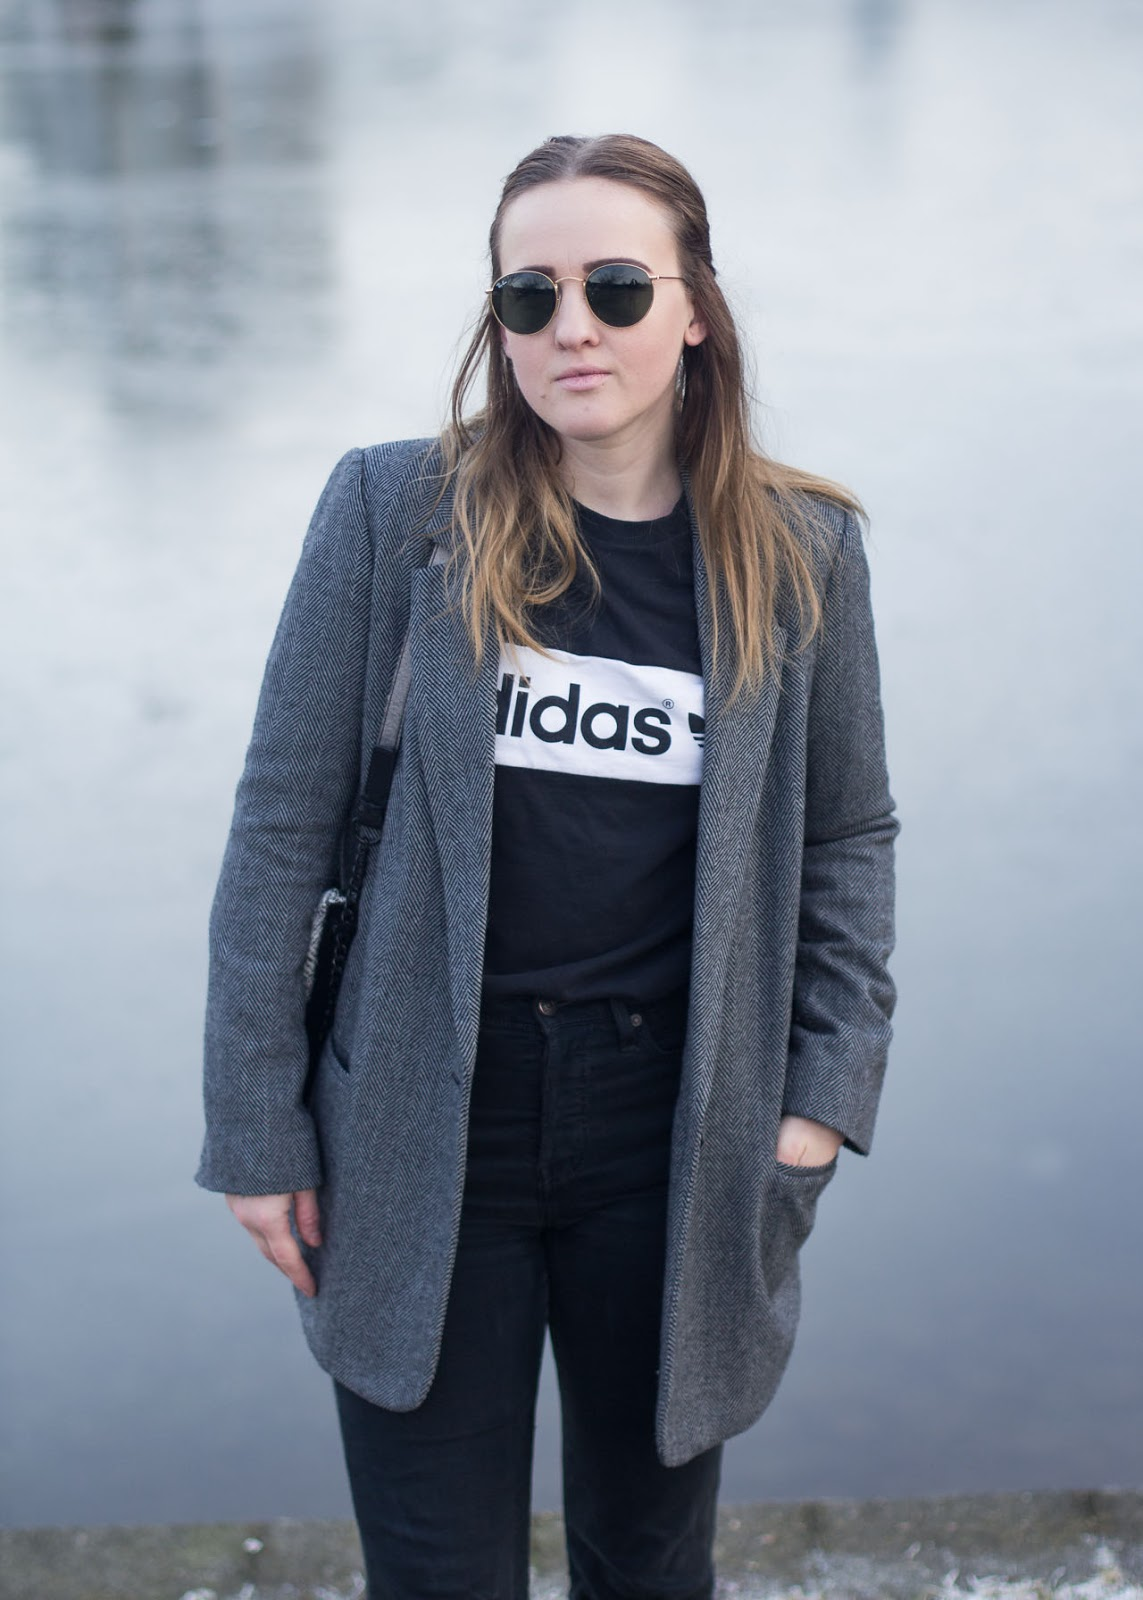 Zara blazer - Adidas sweater - Levi's jeans - Ray-Ban sunglasses - outfit and wish list